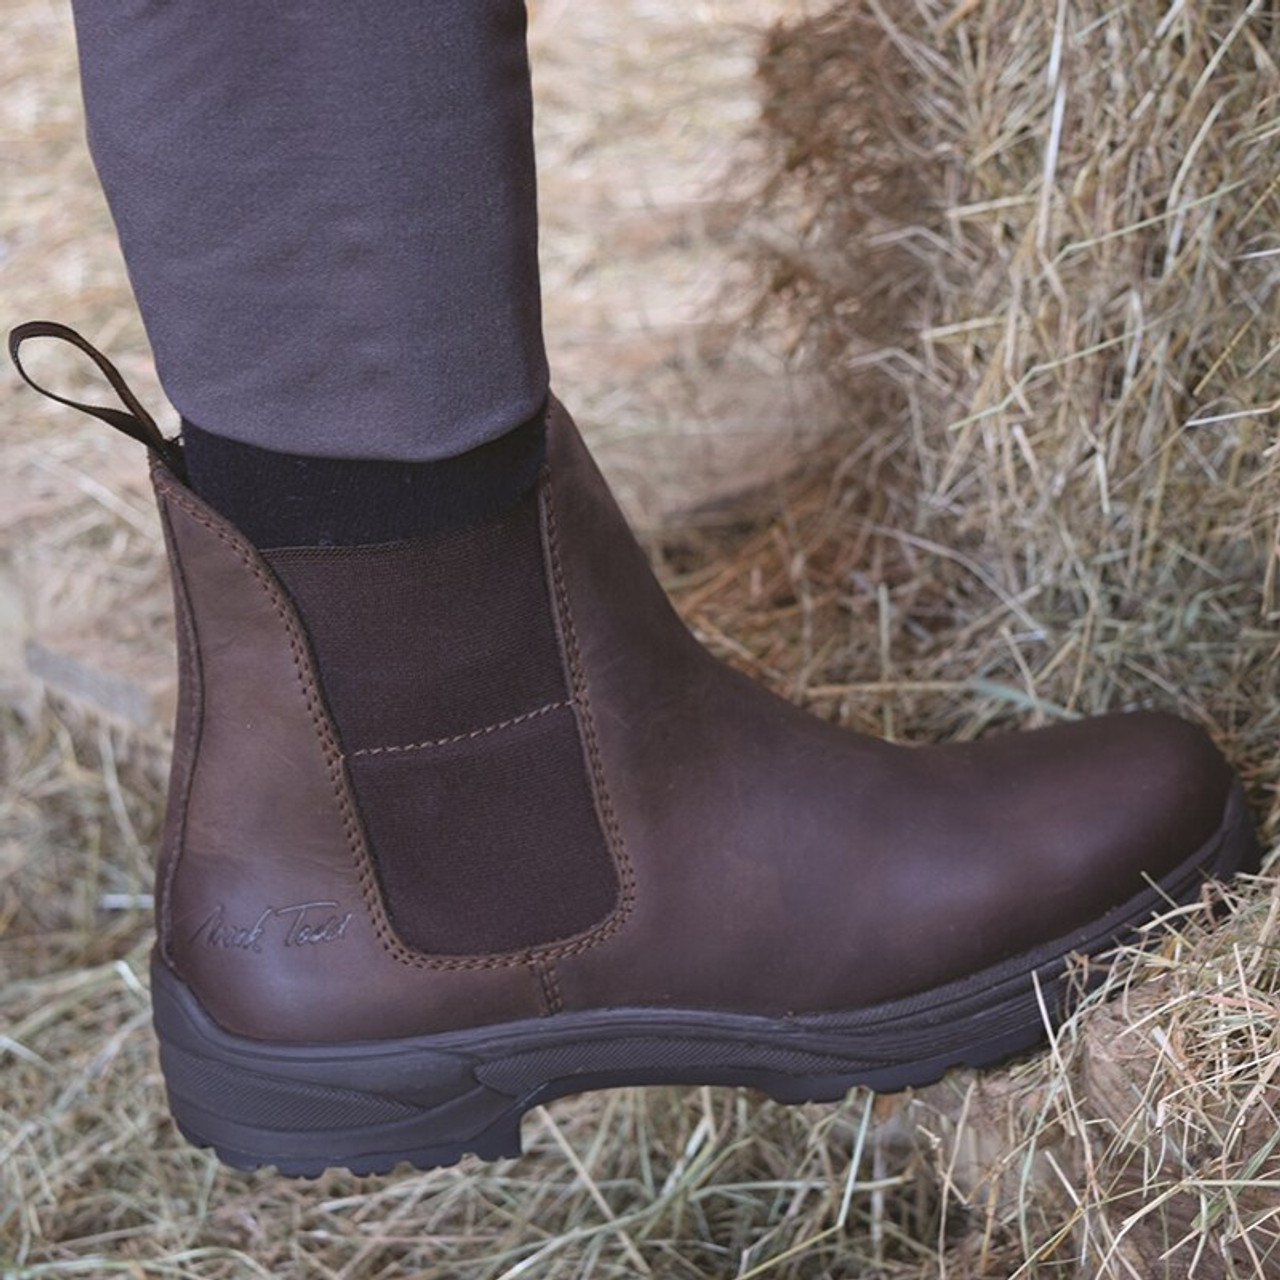 32d78672c549 Mark Todd Kiwi Short Work Boot Adult - Brown - HOOVES AND BOONIES